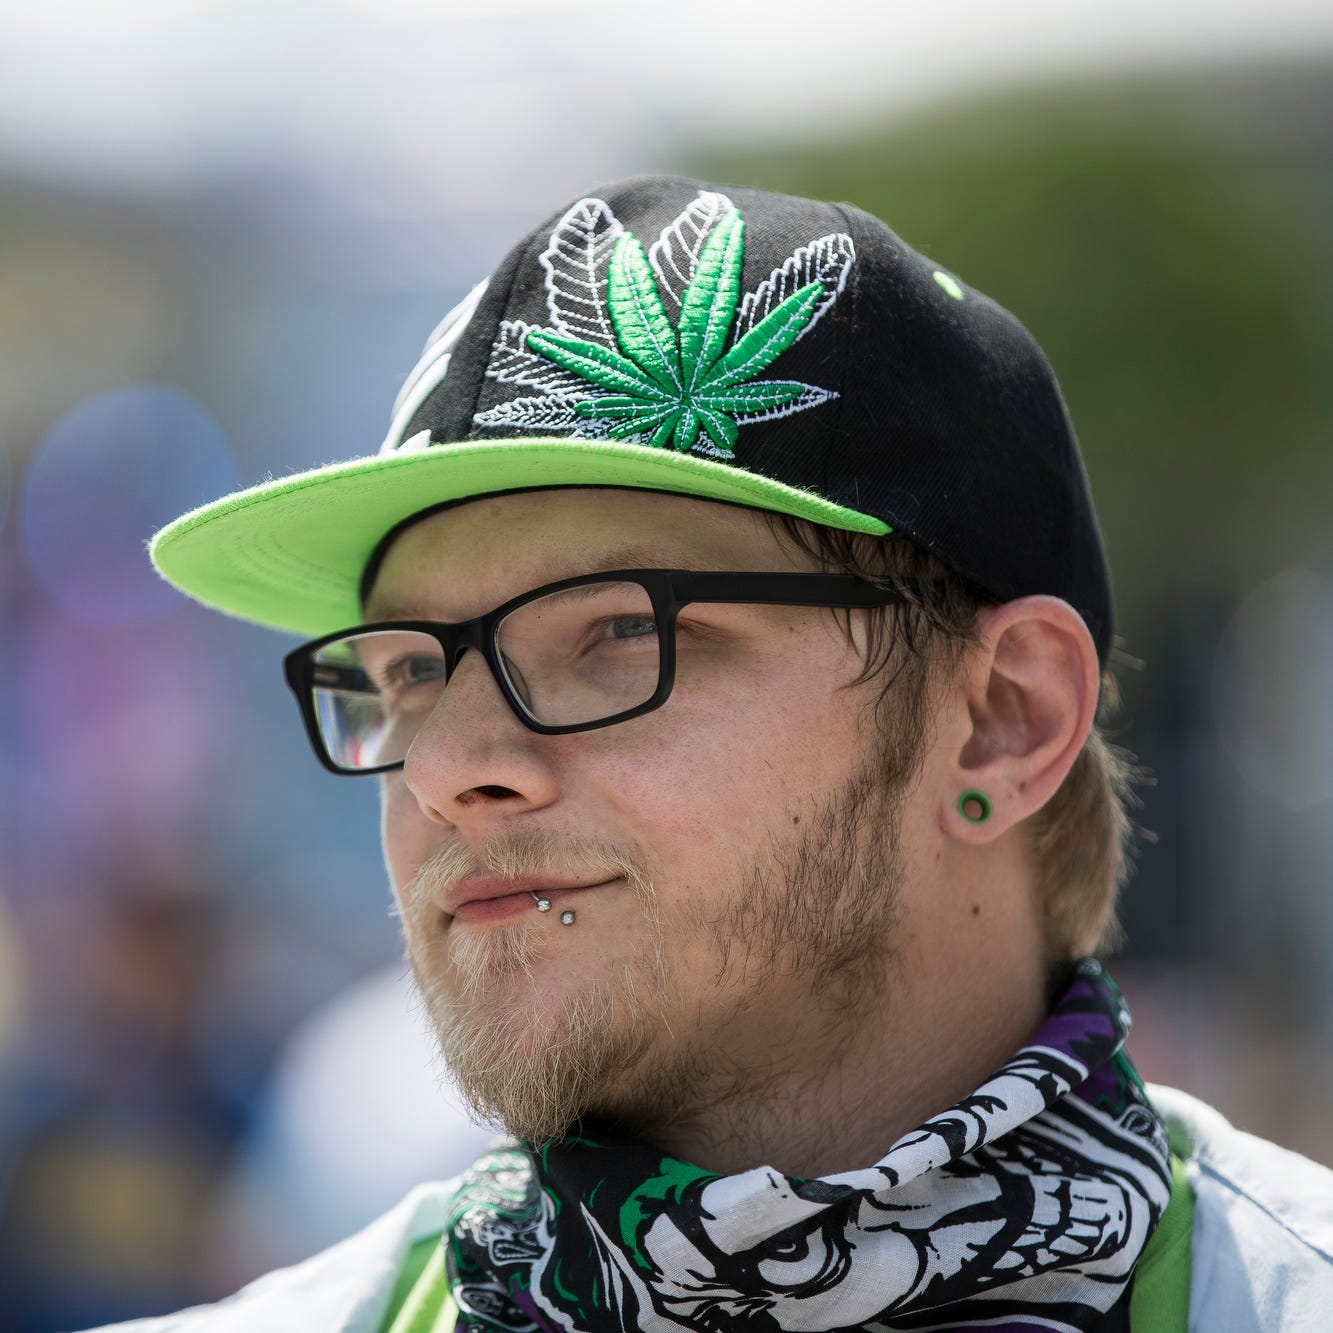 With marijuana now legal in Michigan, Movement fest dances to a slightly different beat